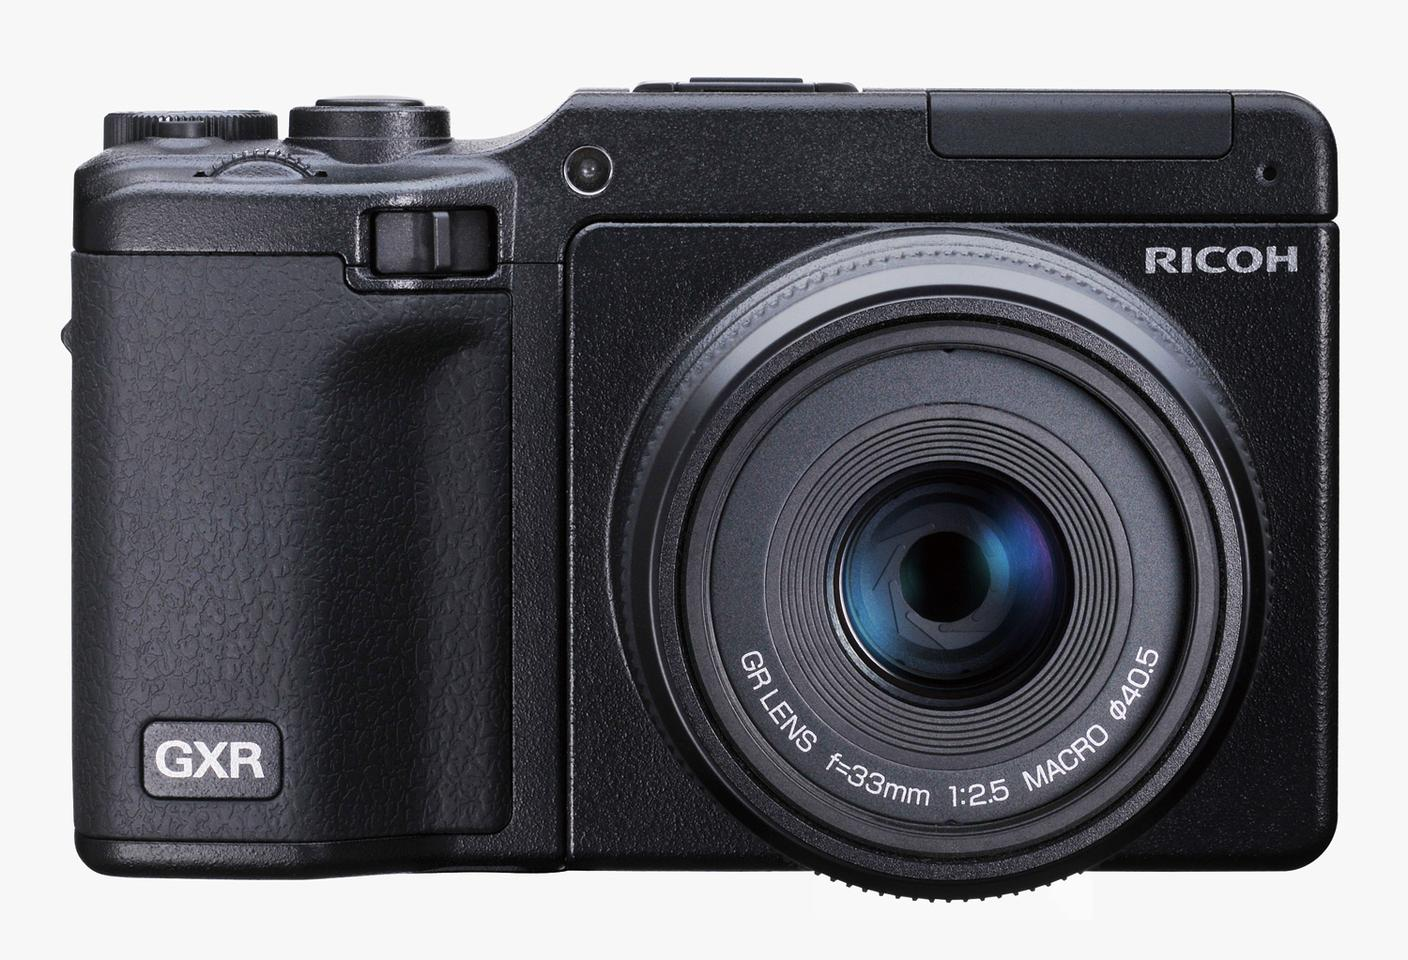 The front of the Ricoh GXR system, including lens unit